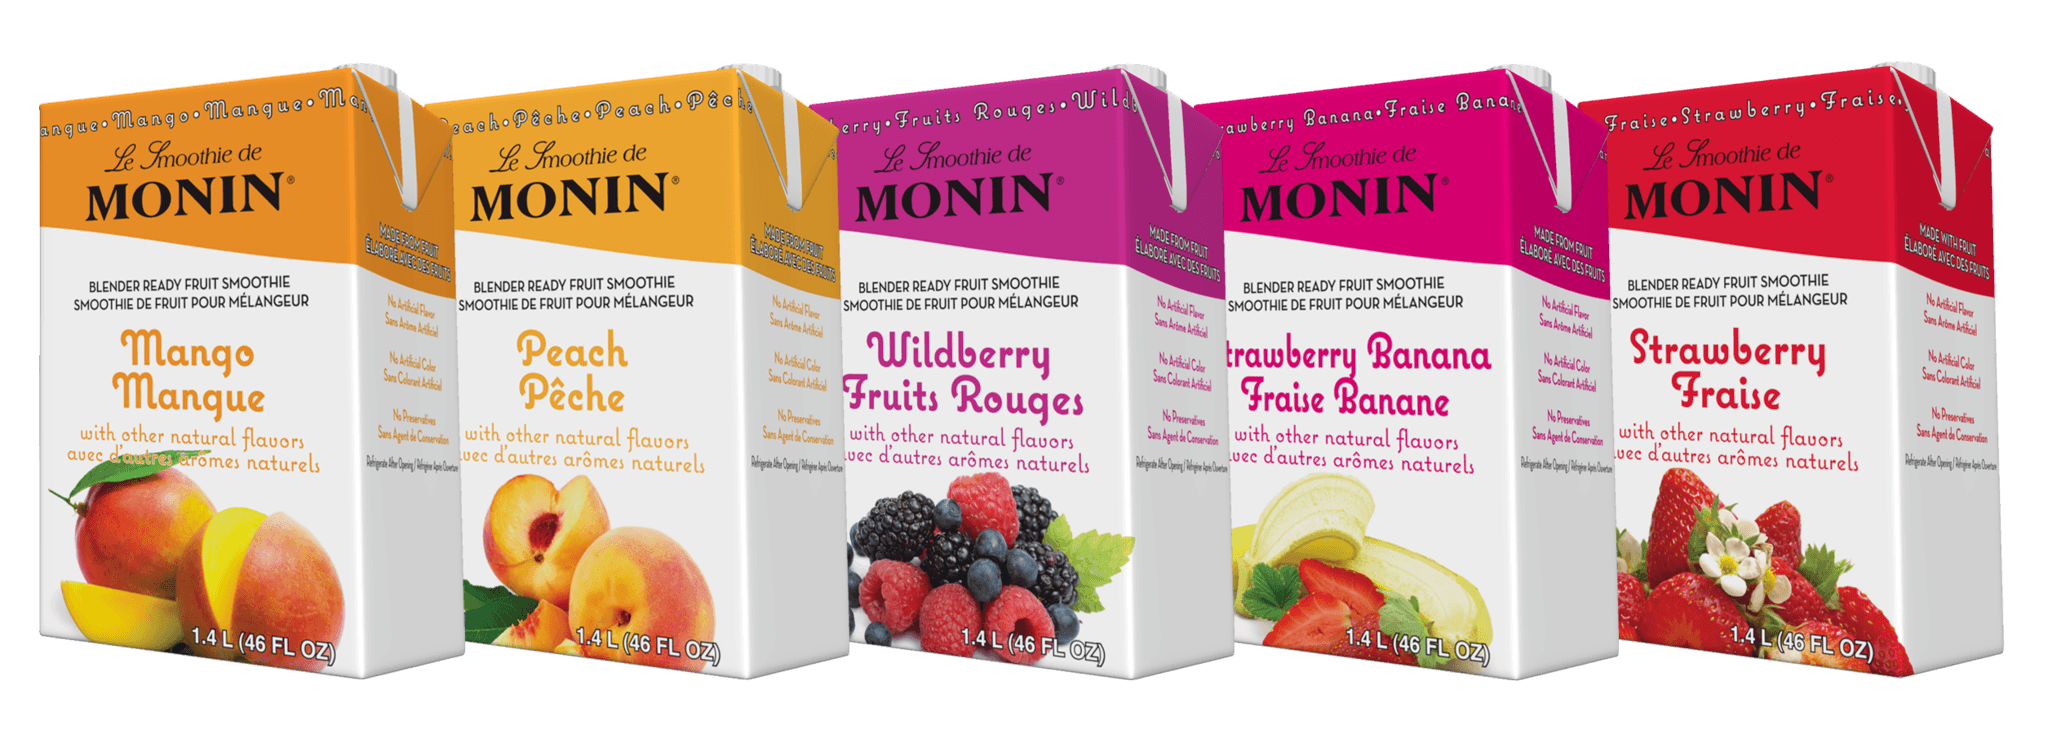 Mixed Case of Monin Smoothie